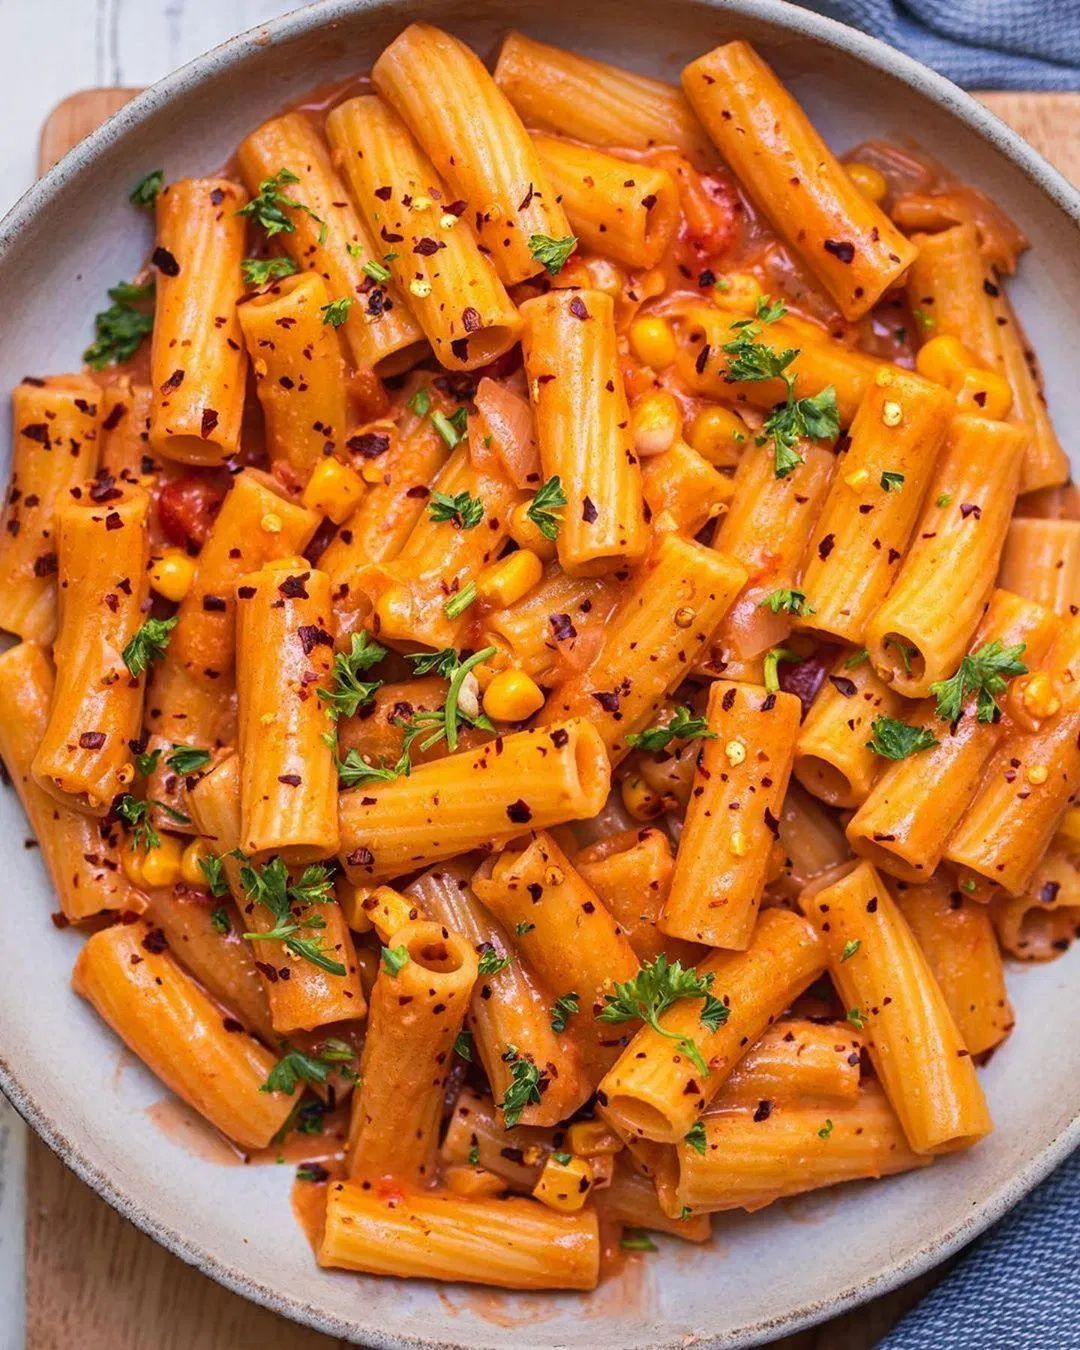 Rigatoni in a Rich and Flavorful Tomato Sauce - Best of Vegan